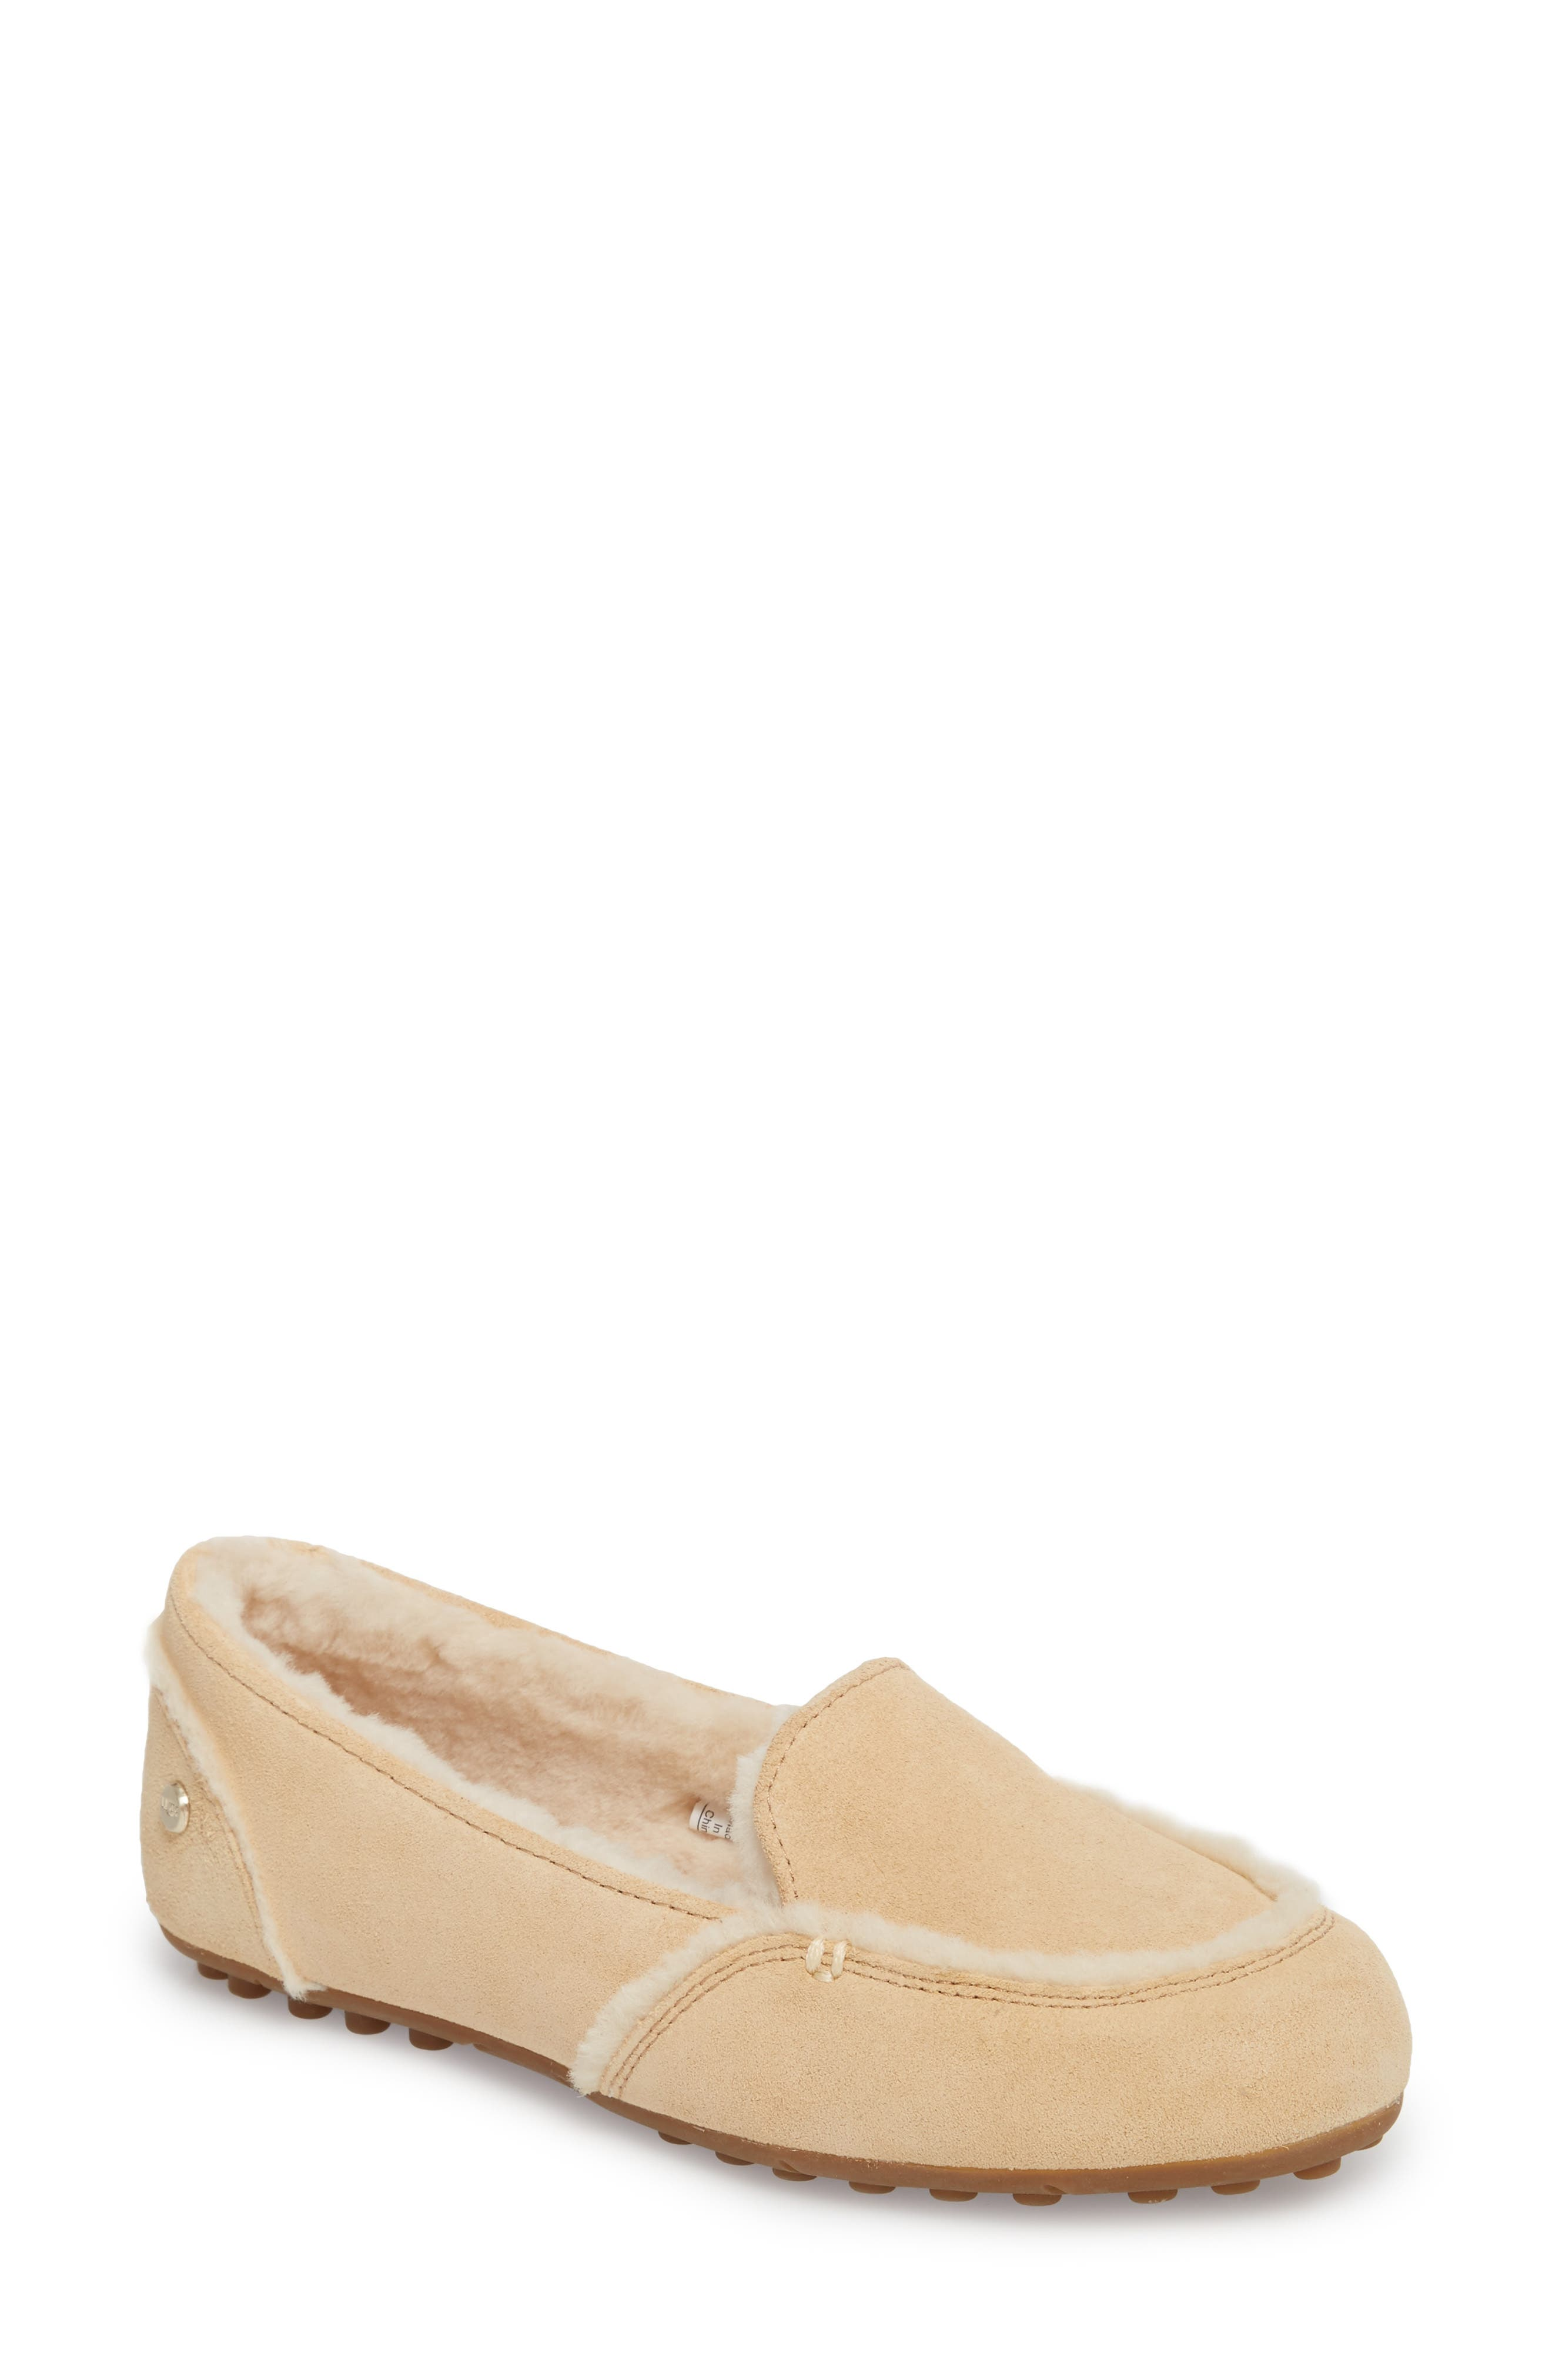 Hailey Slipper,                             Main thumbnail 1, color,                             Beige Suede